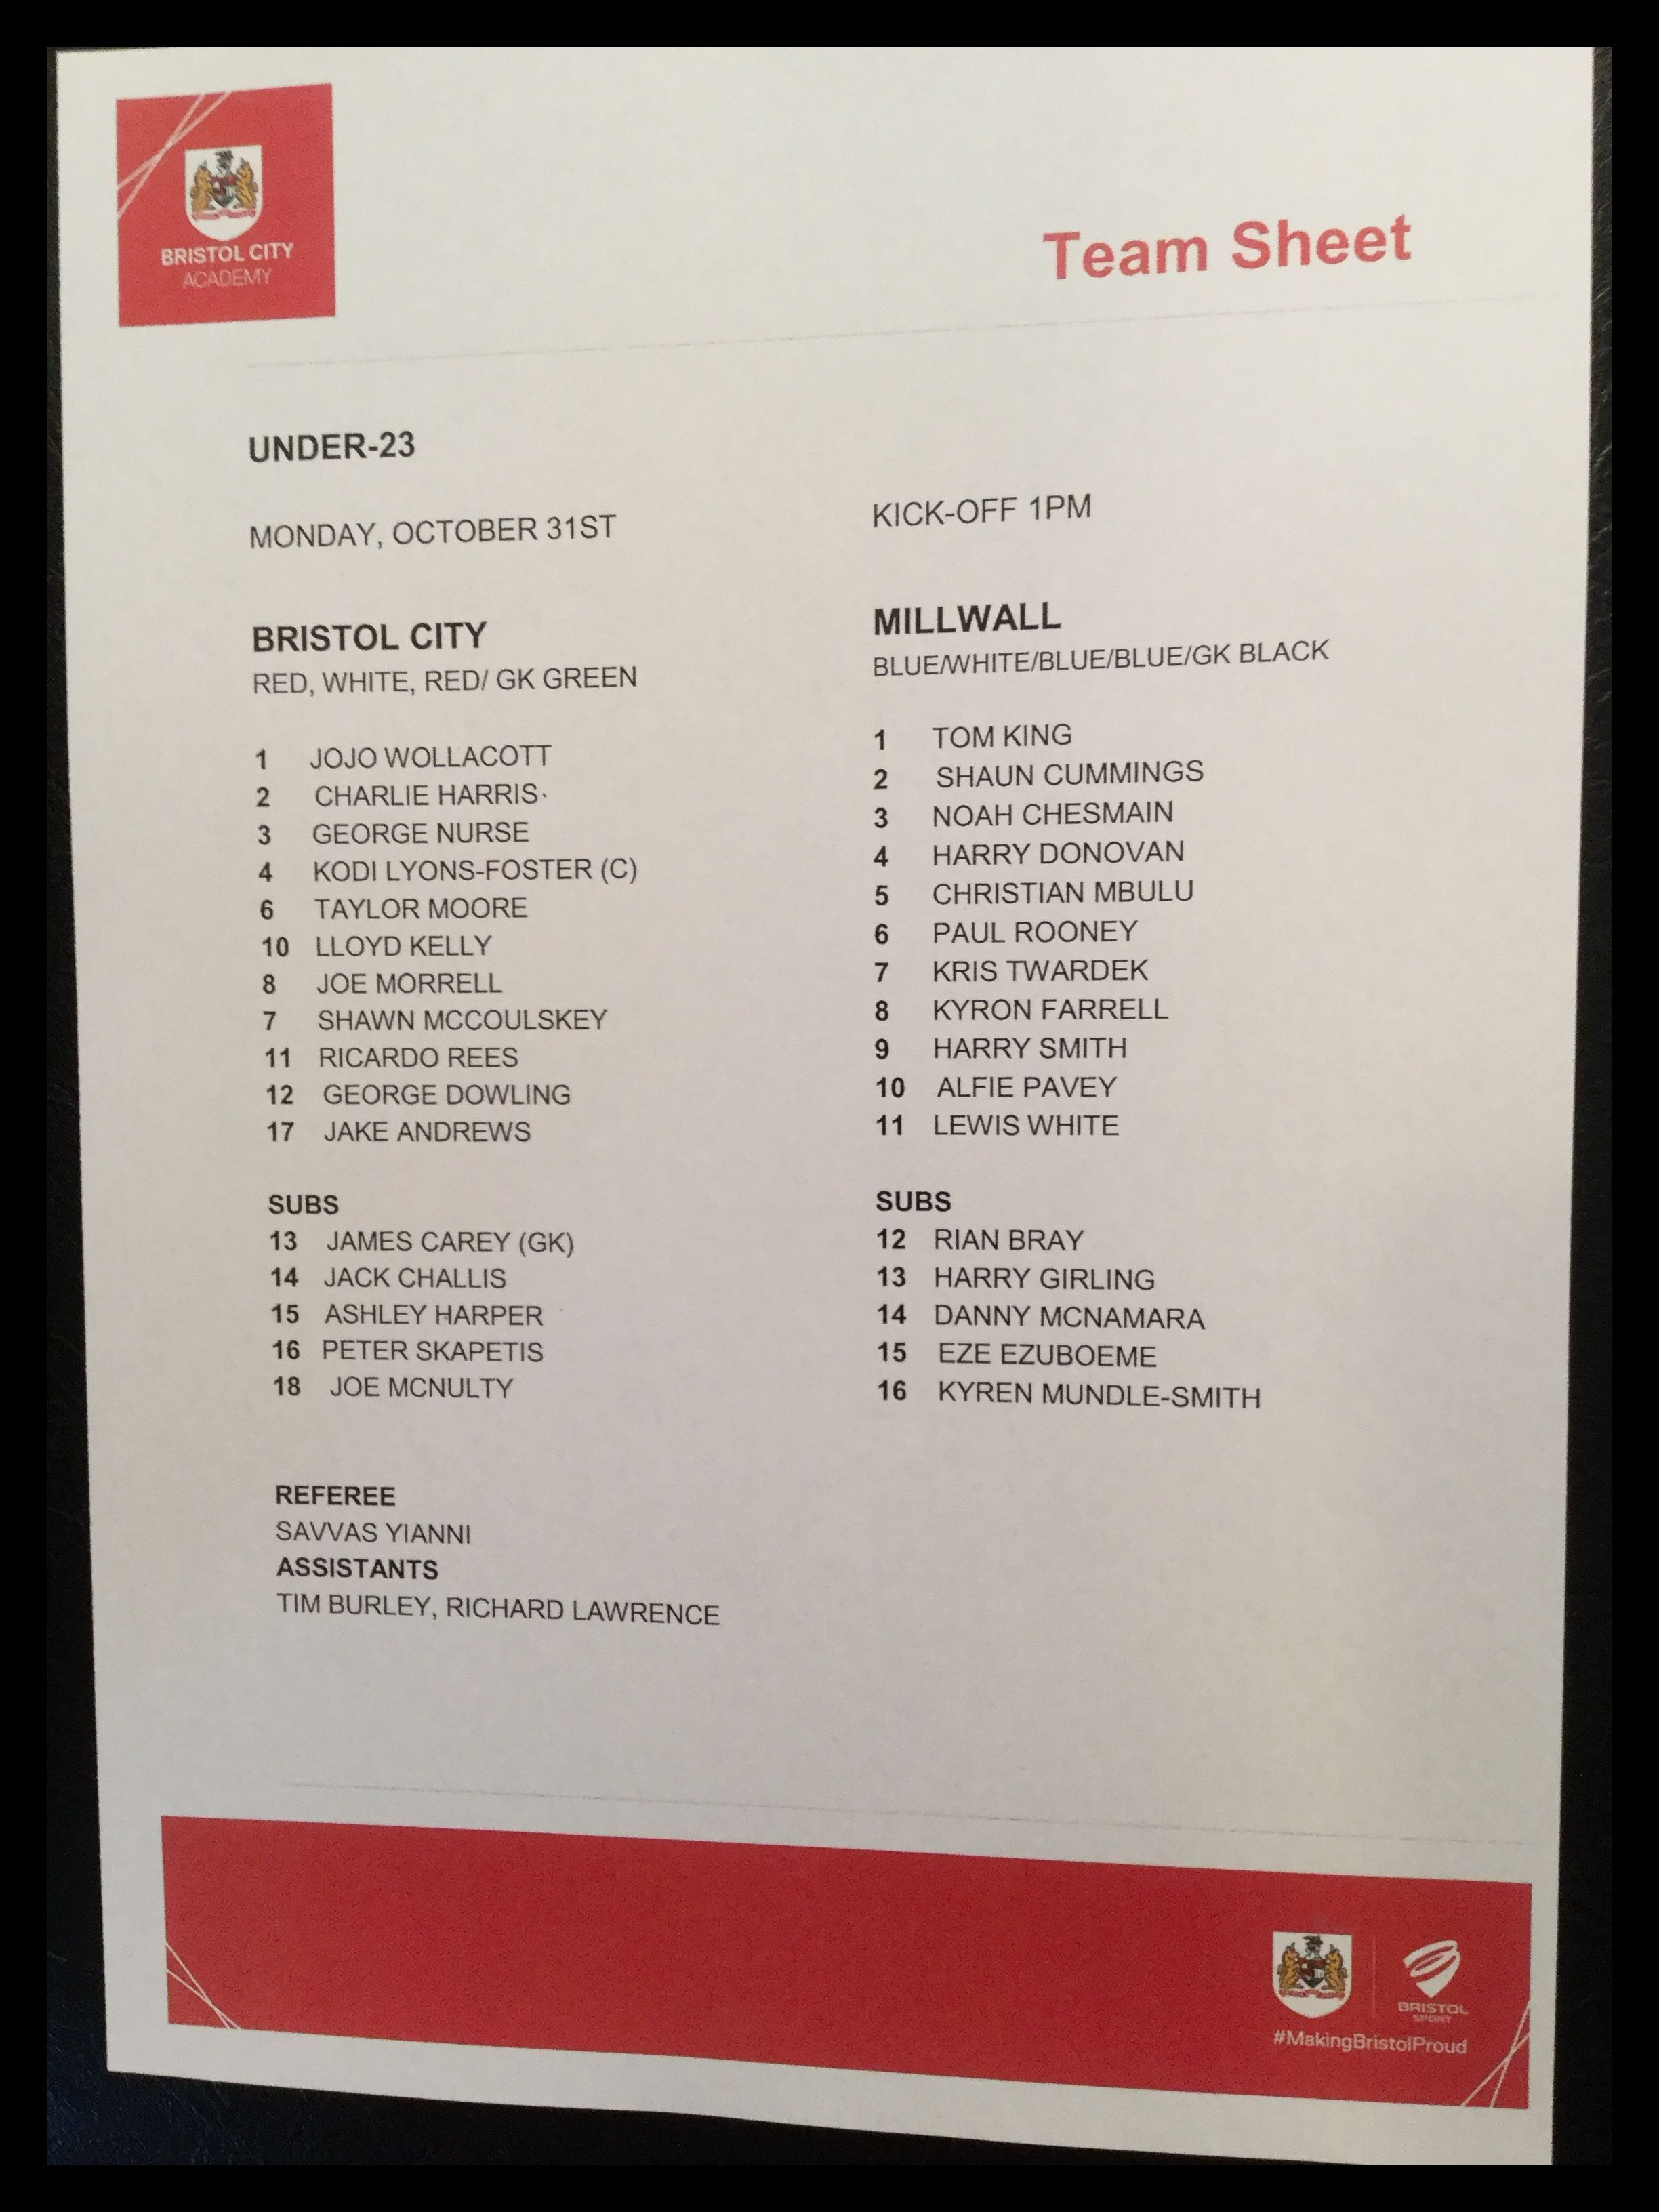 Bristol City v Millwall 31-10-16 Team Sheet